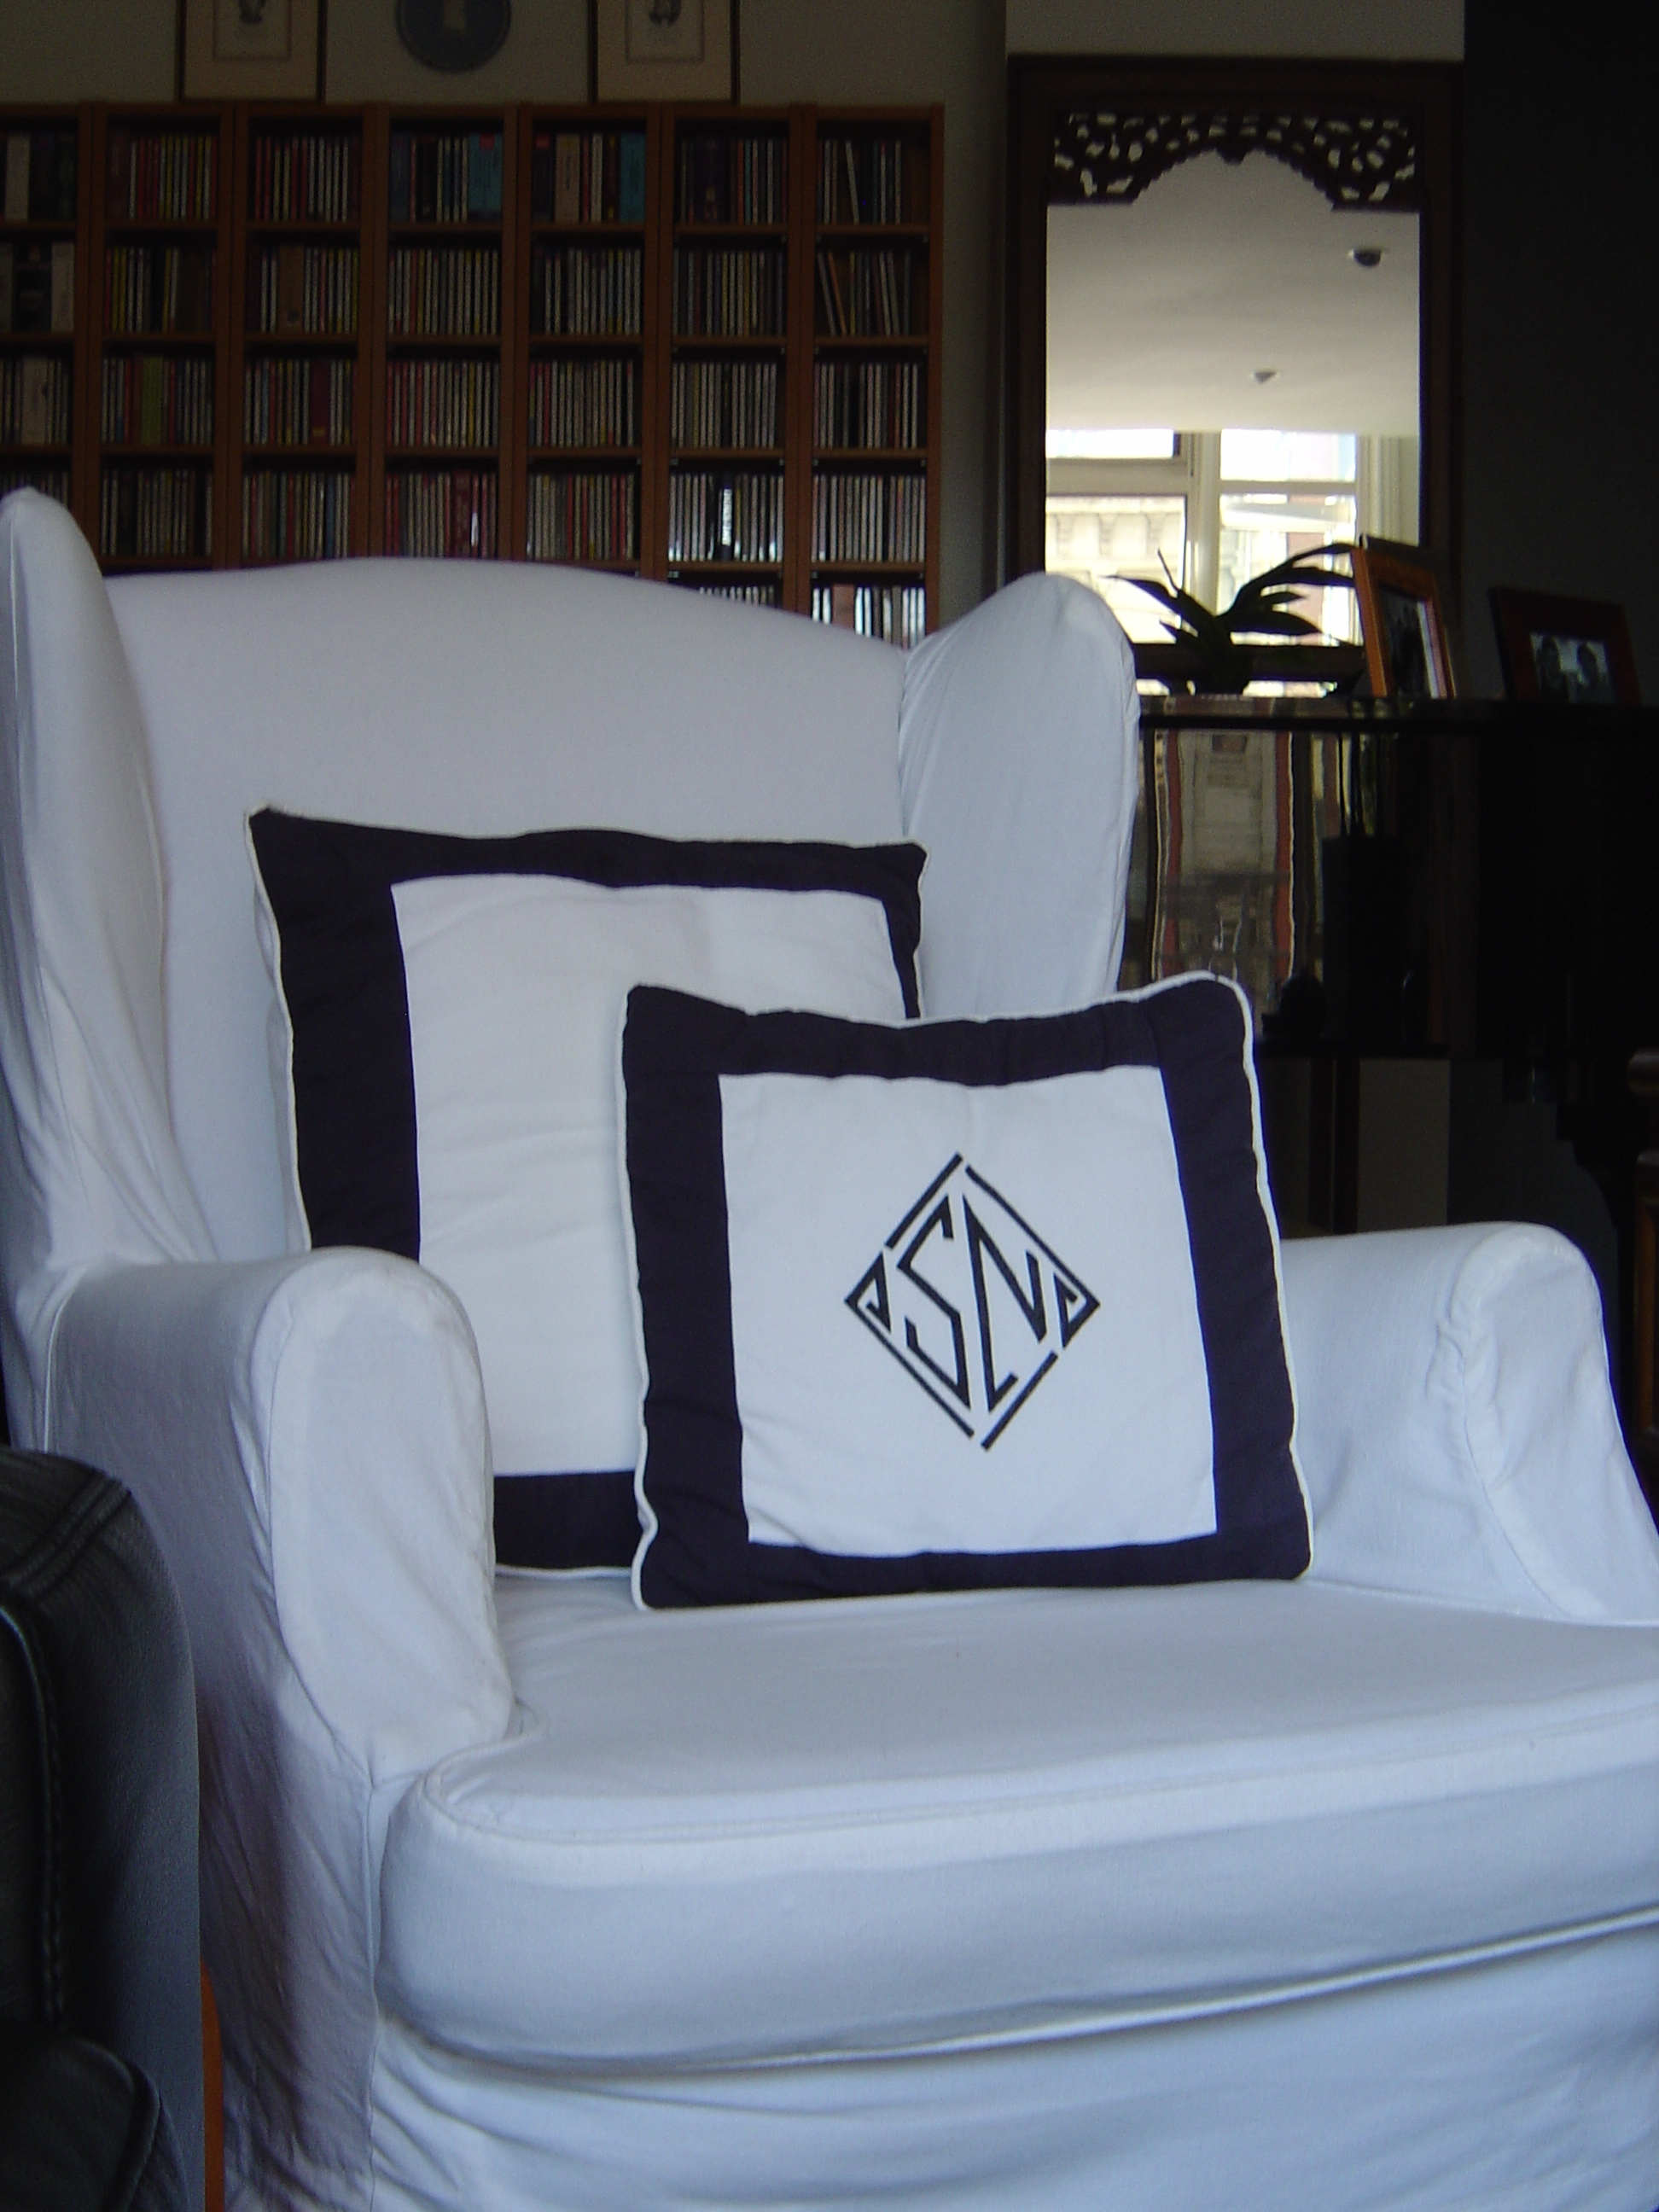 Couch Arm Covers How To Make Make A Chic Loose Arm Chair Cover